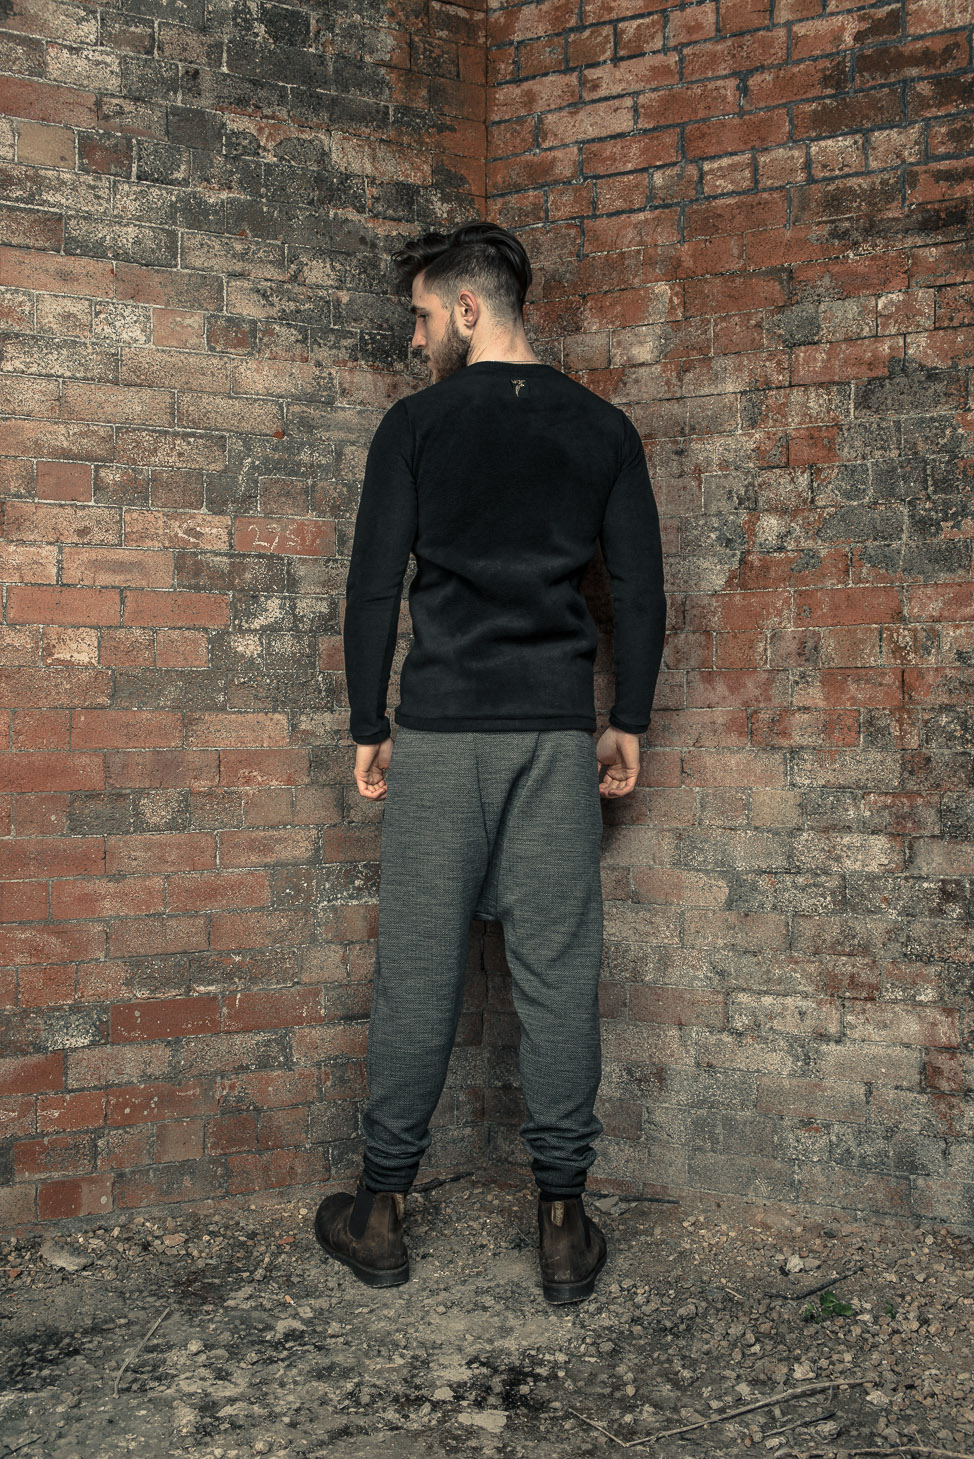 zaramia-ava-zaramiaava-leeds-fashion-designer-ethical-sustainable-tailored-minimalist-fitted-versatile-drape-kobe-grey-tshirt-top-hareem-trousers-black-grey-texture-styling-menswear-model-27